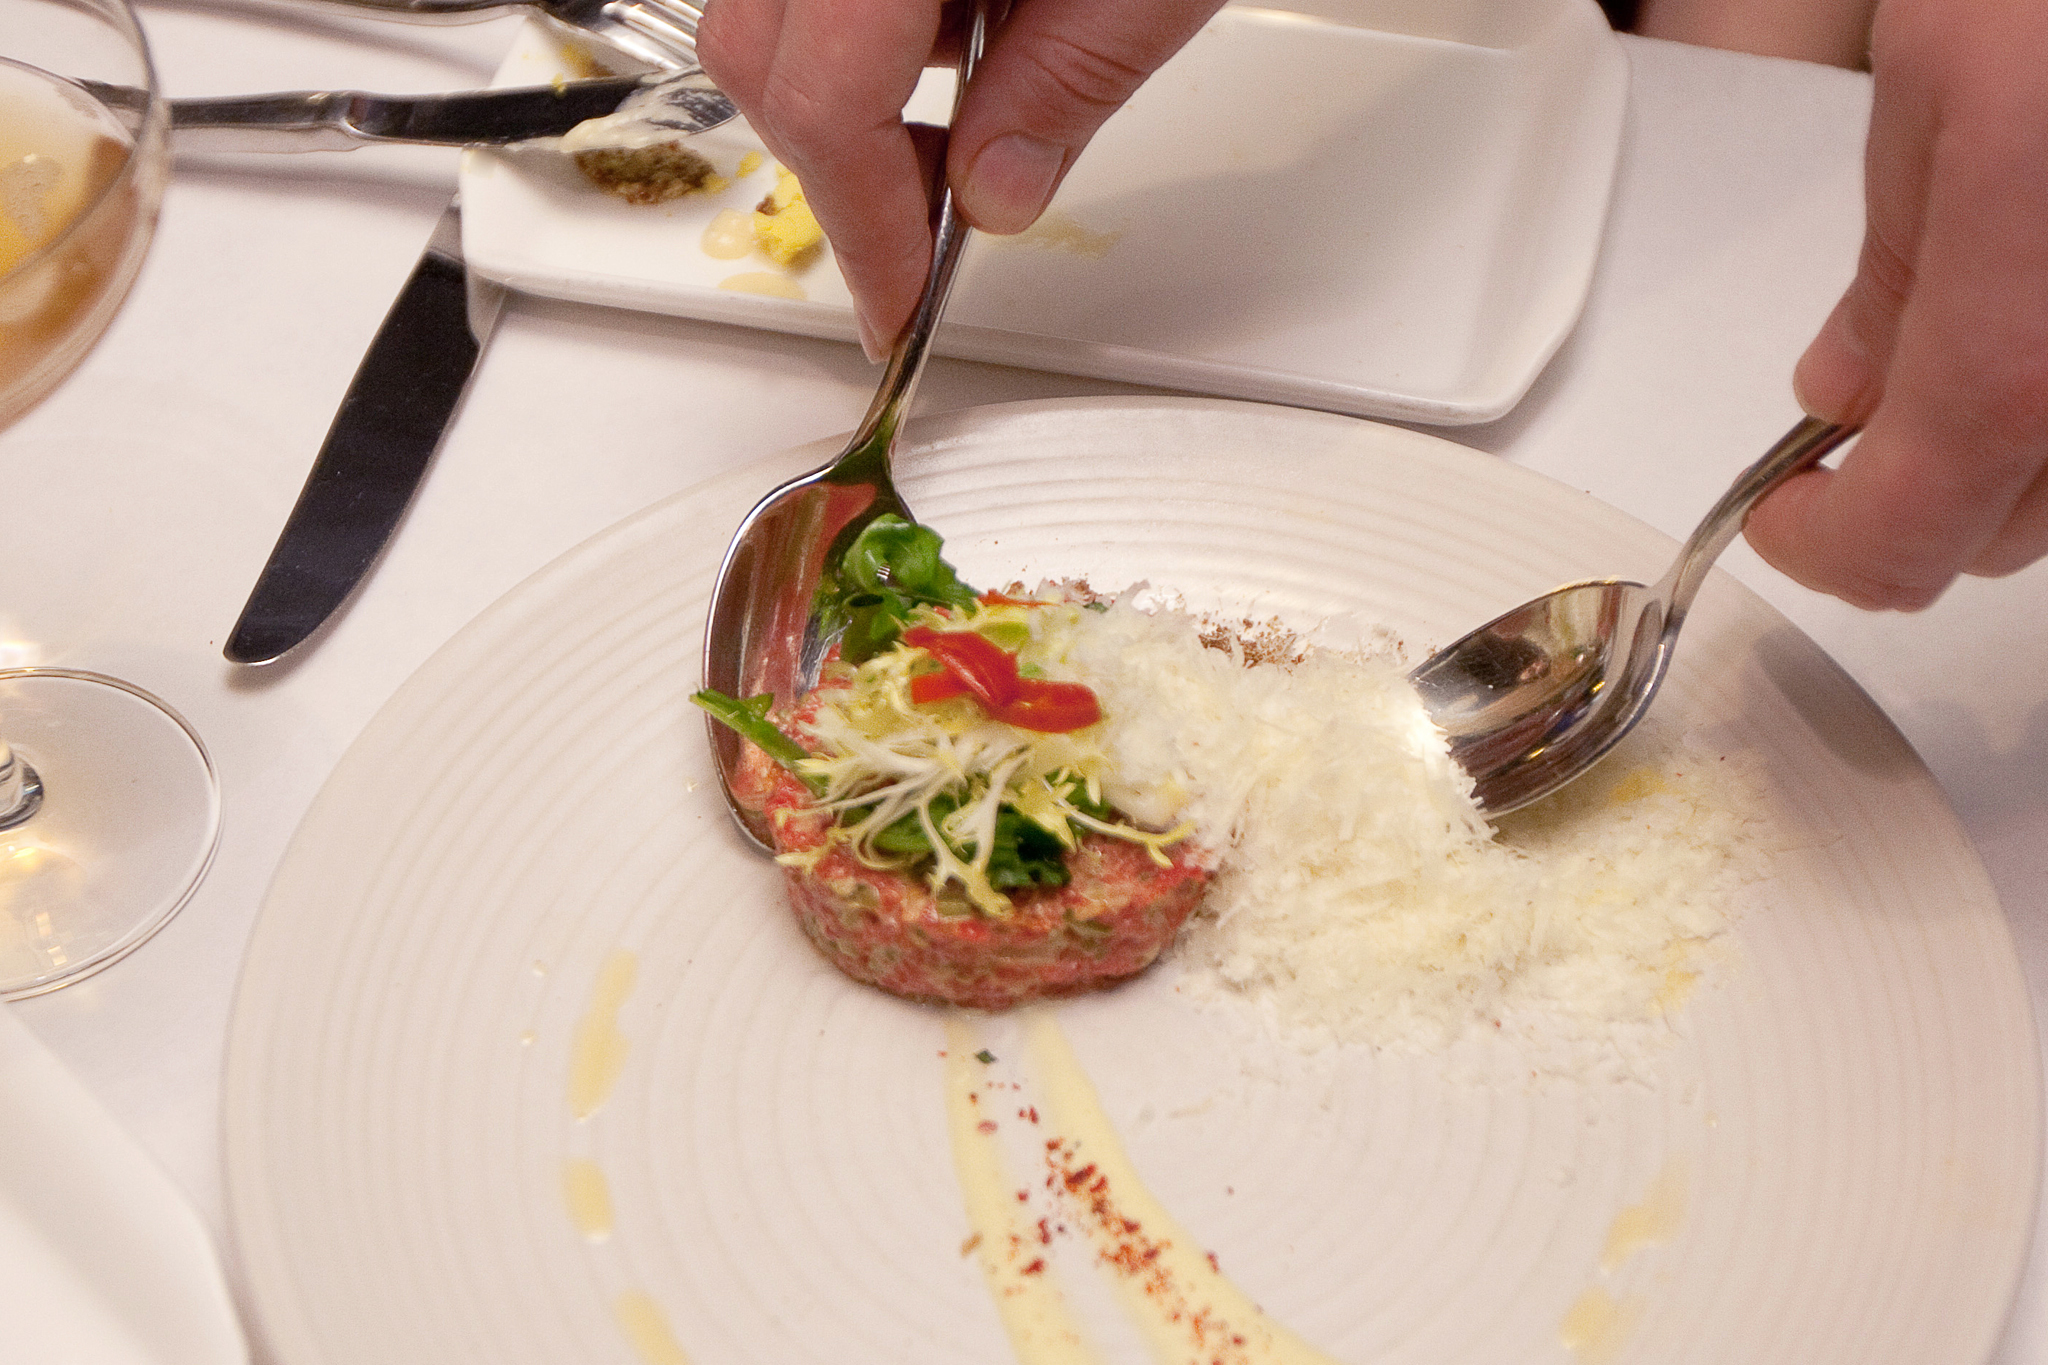 Bison tartare at The Gage